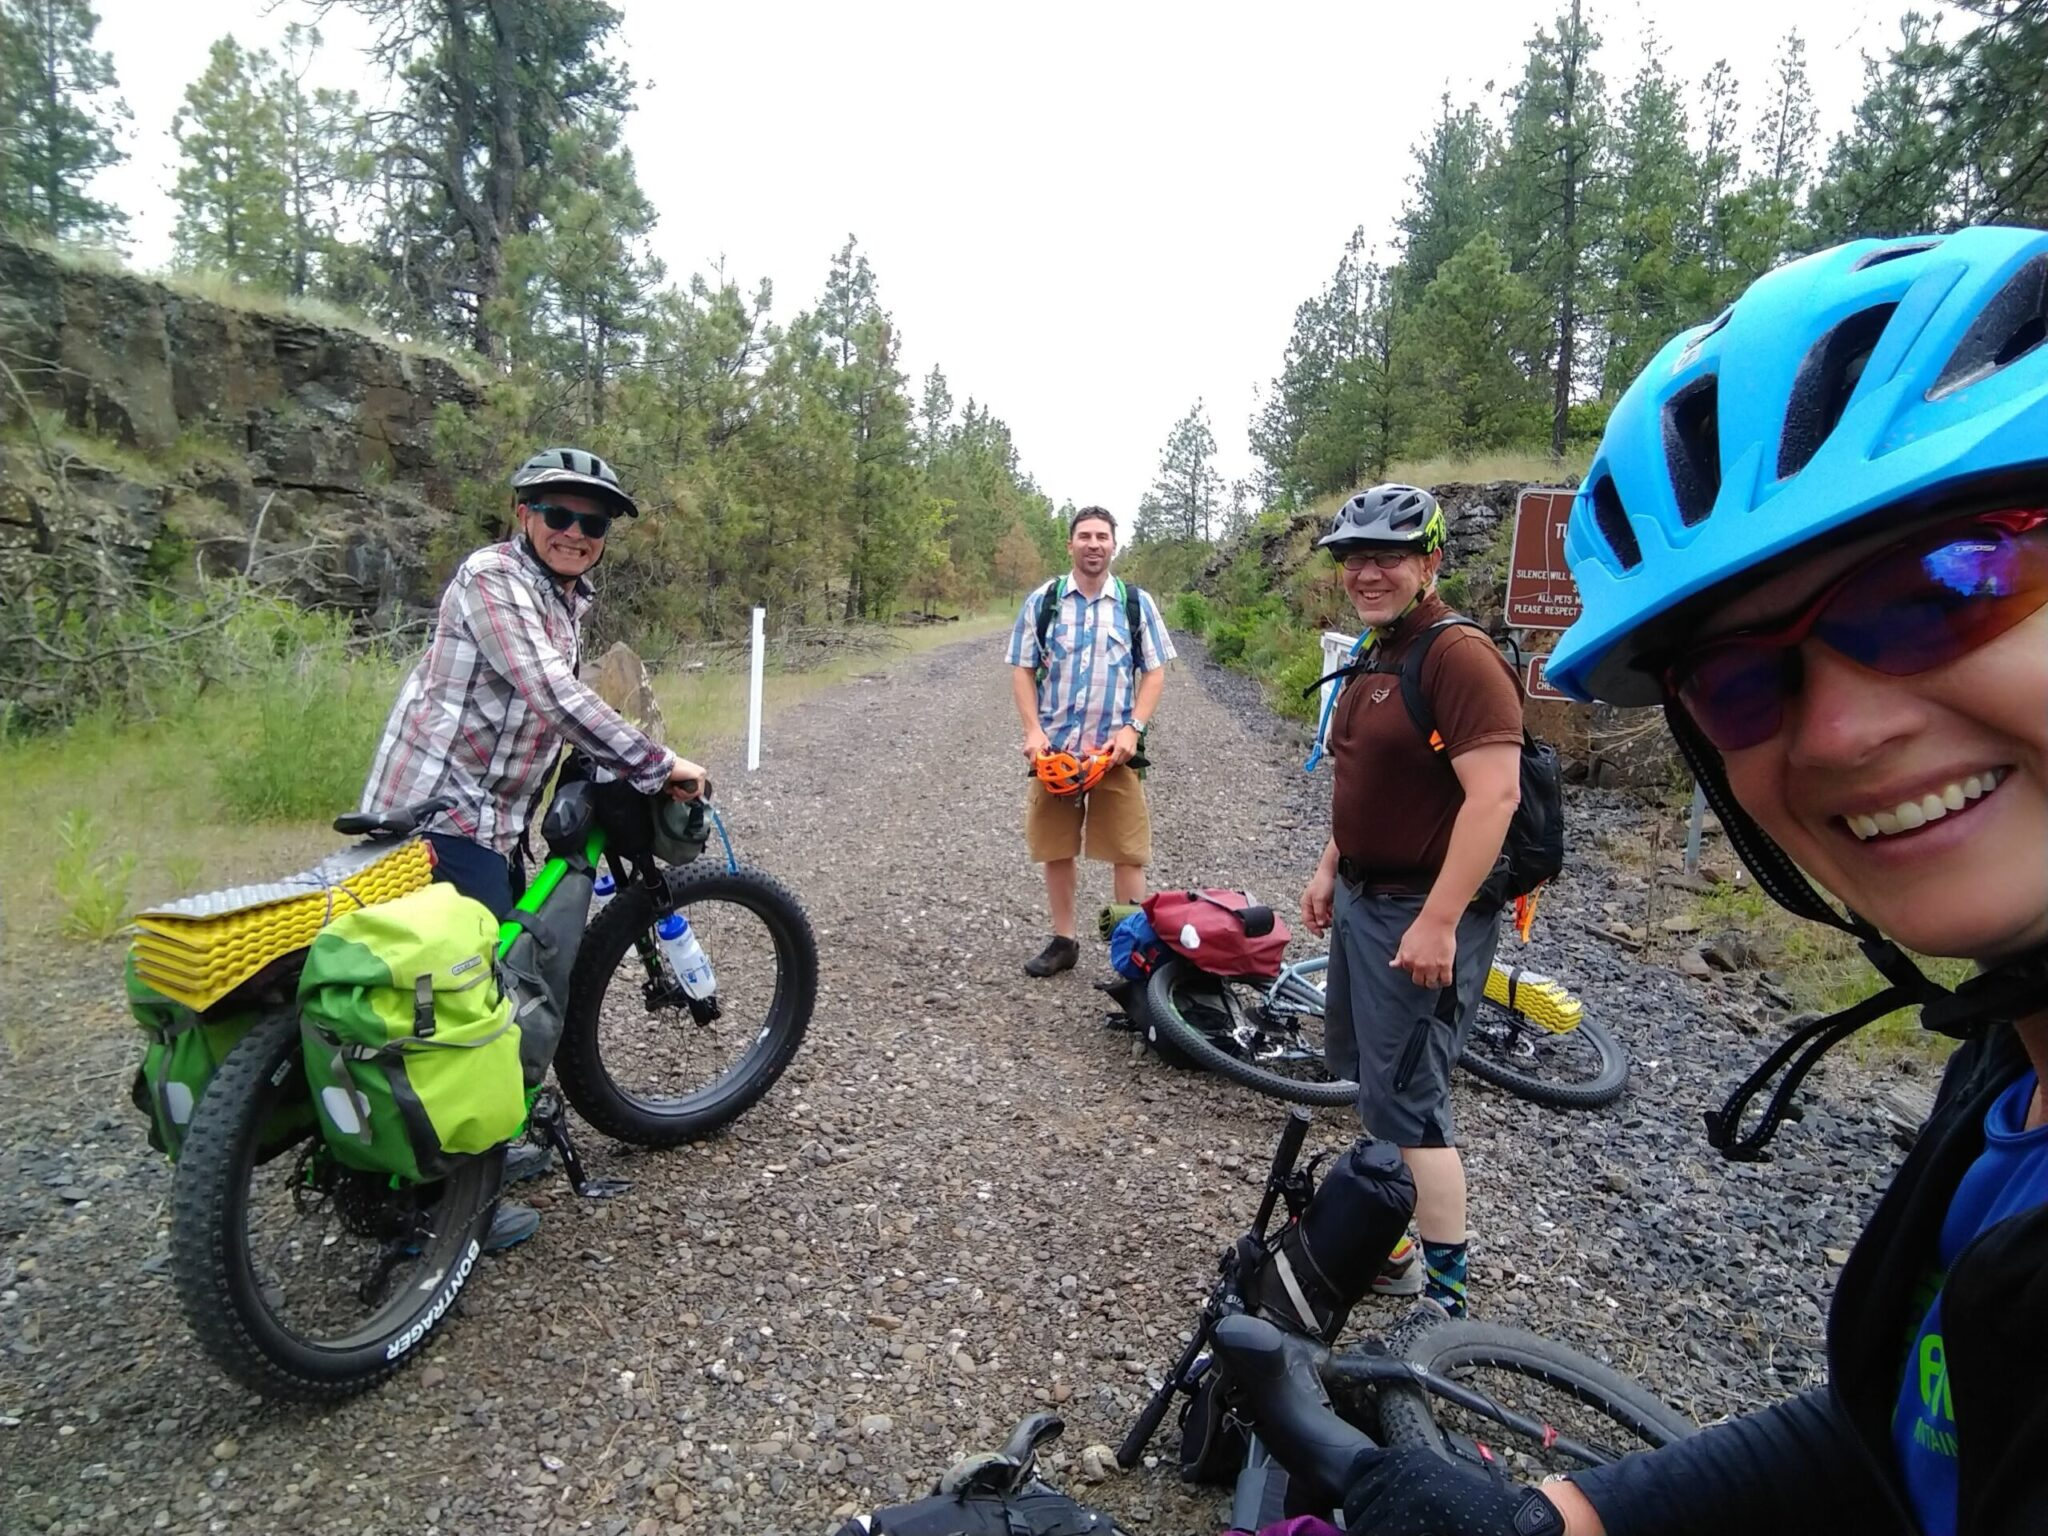 A woman taking a selfie with three other men bike riders.